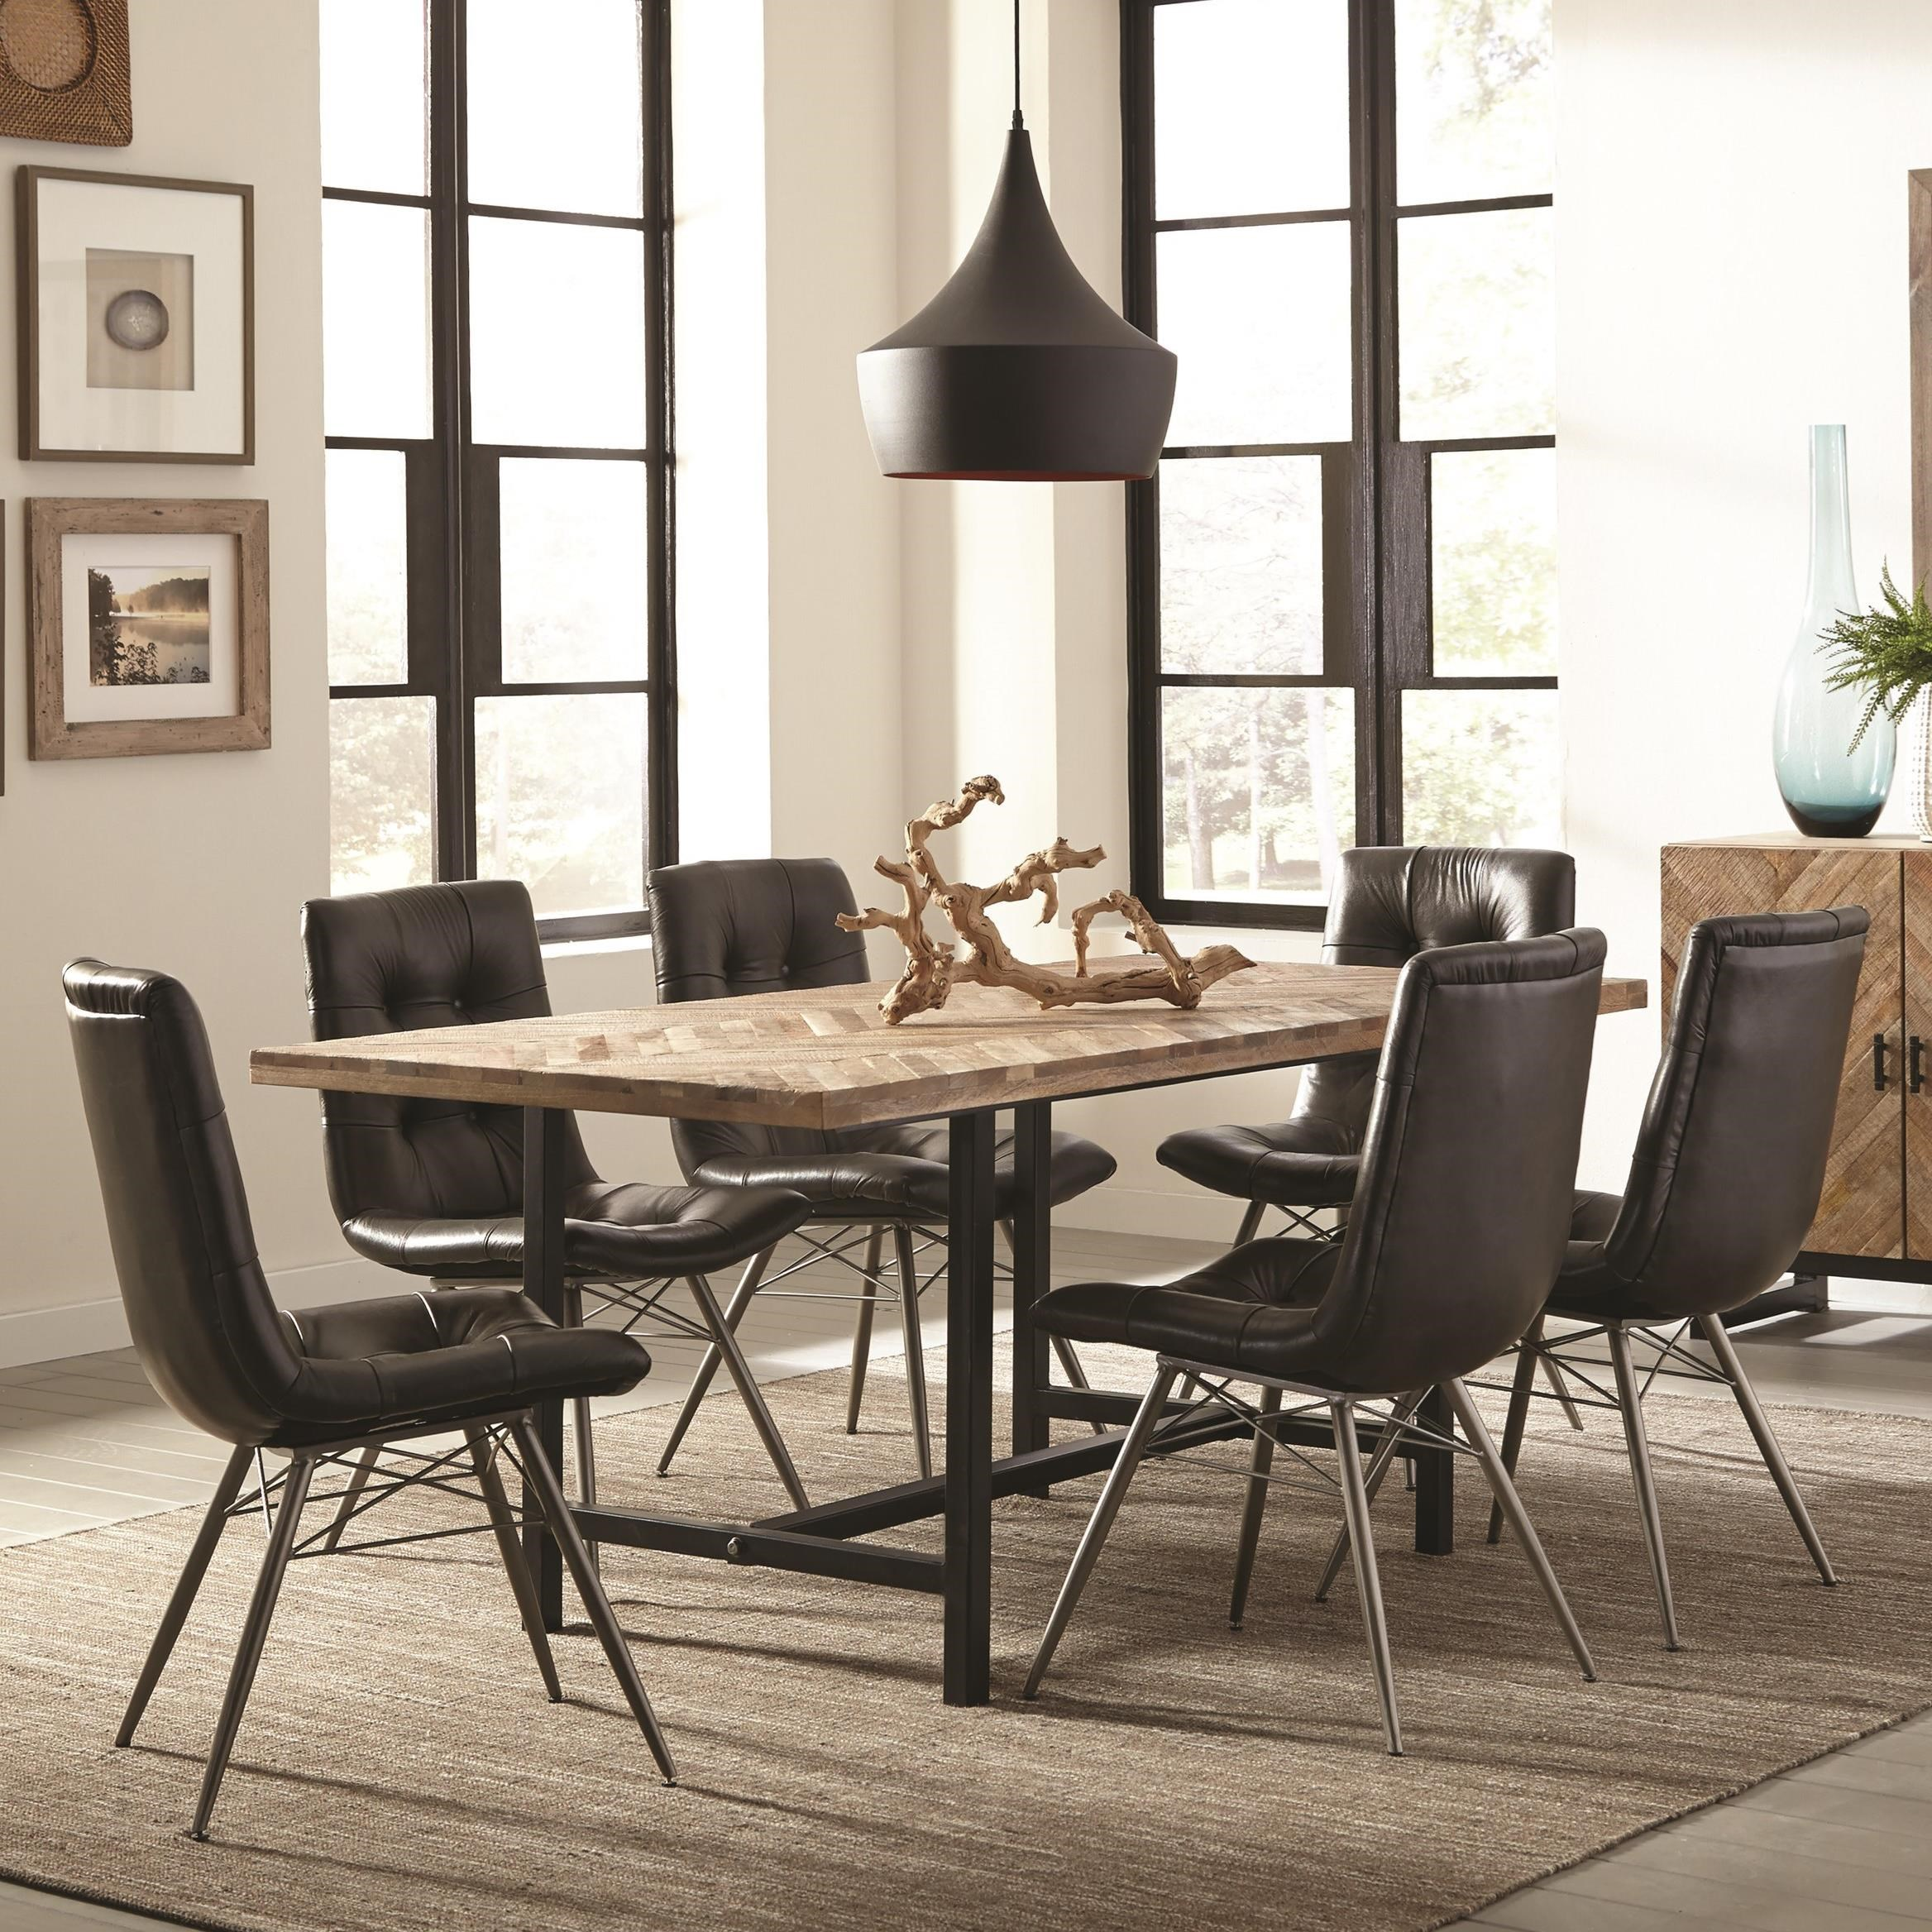 Dining Room Sets Dallas Tx: Coaster Thompson 7pc Natural Mango/Charcoal Dining Table